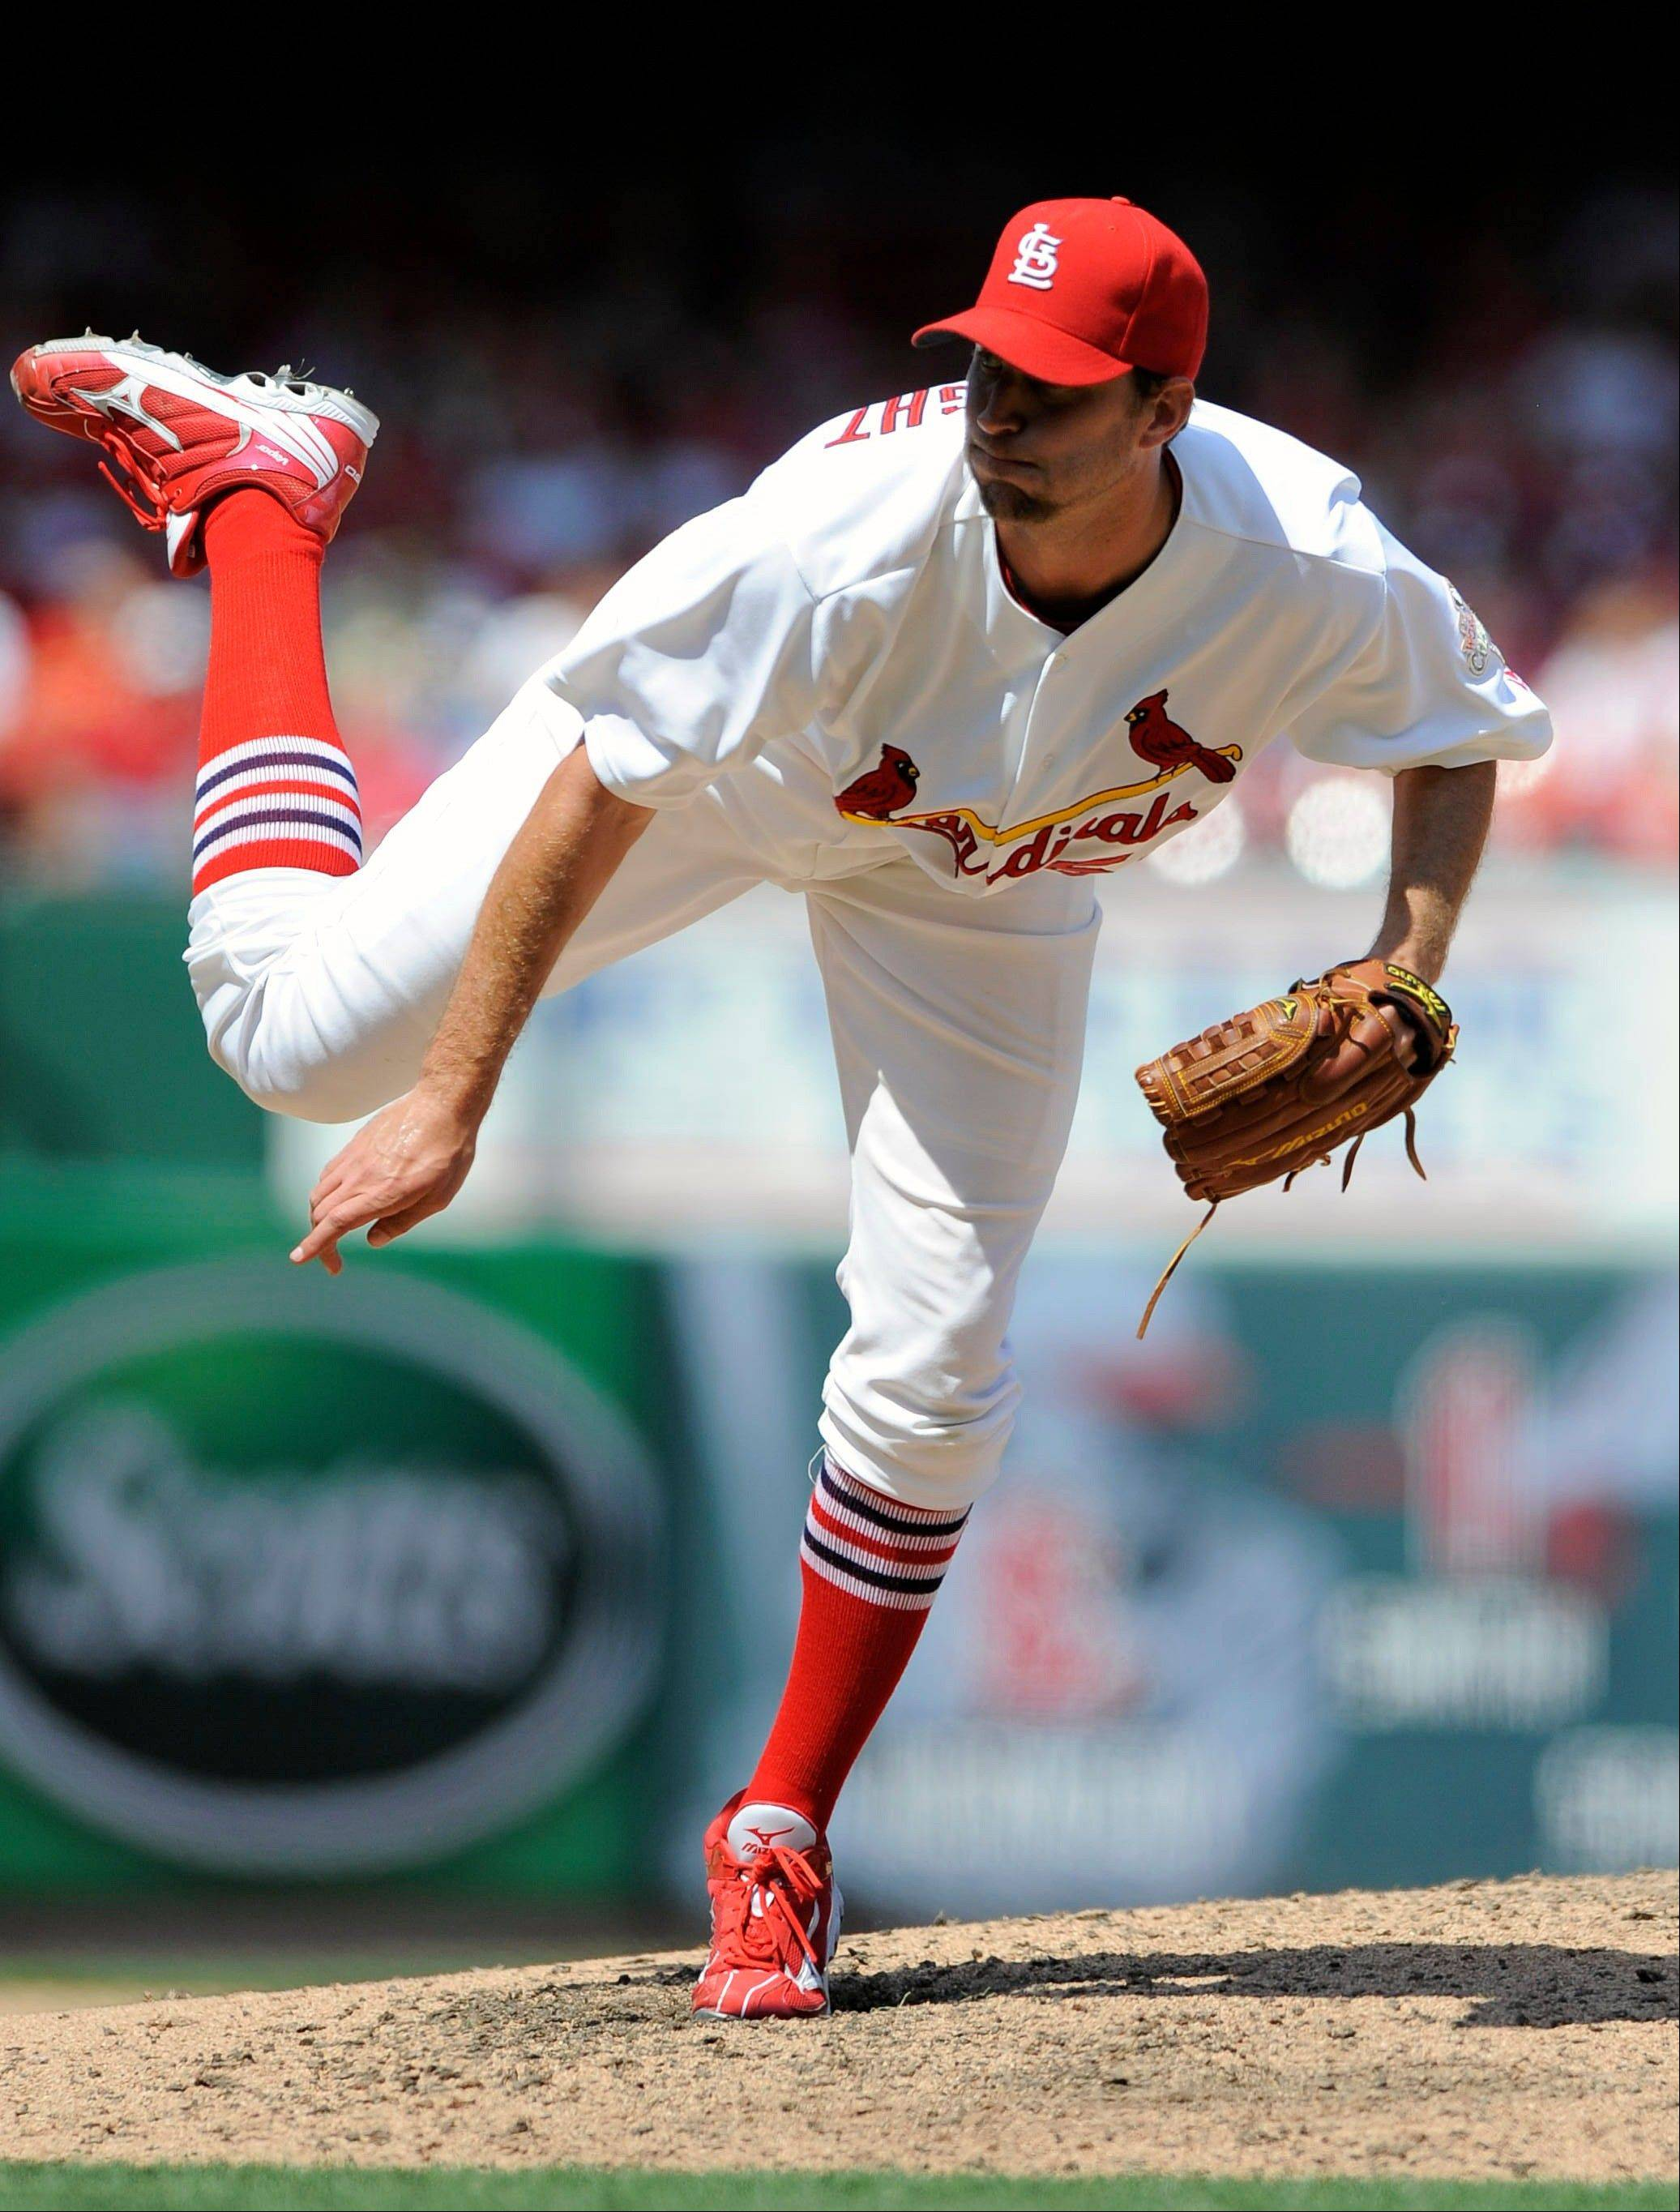 Cardinals starting pitcher Adam Wainwright struck out seven and walked three Thursday in a home victory over San Francisco.